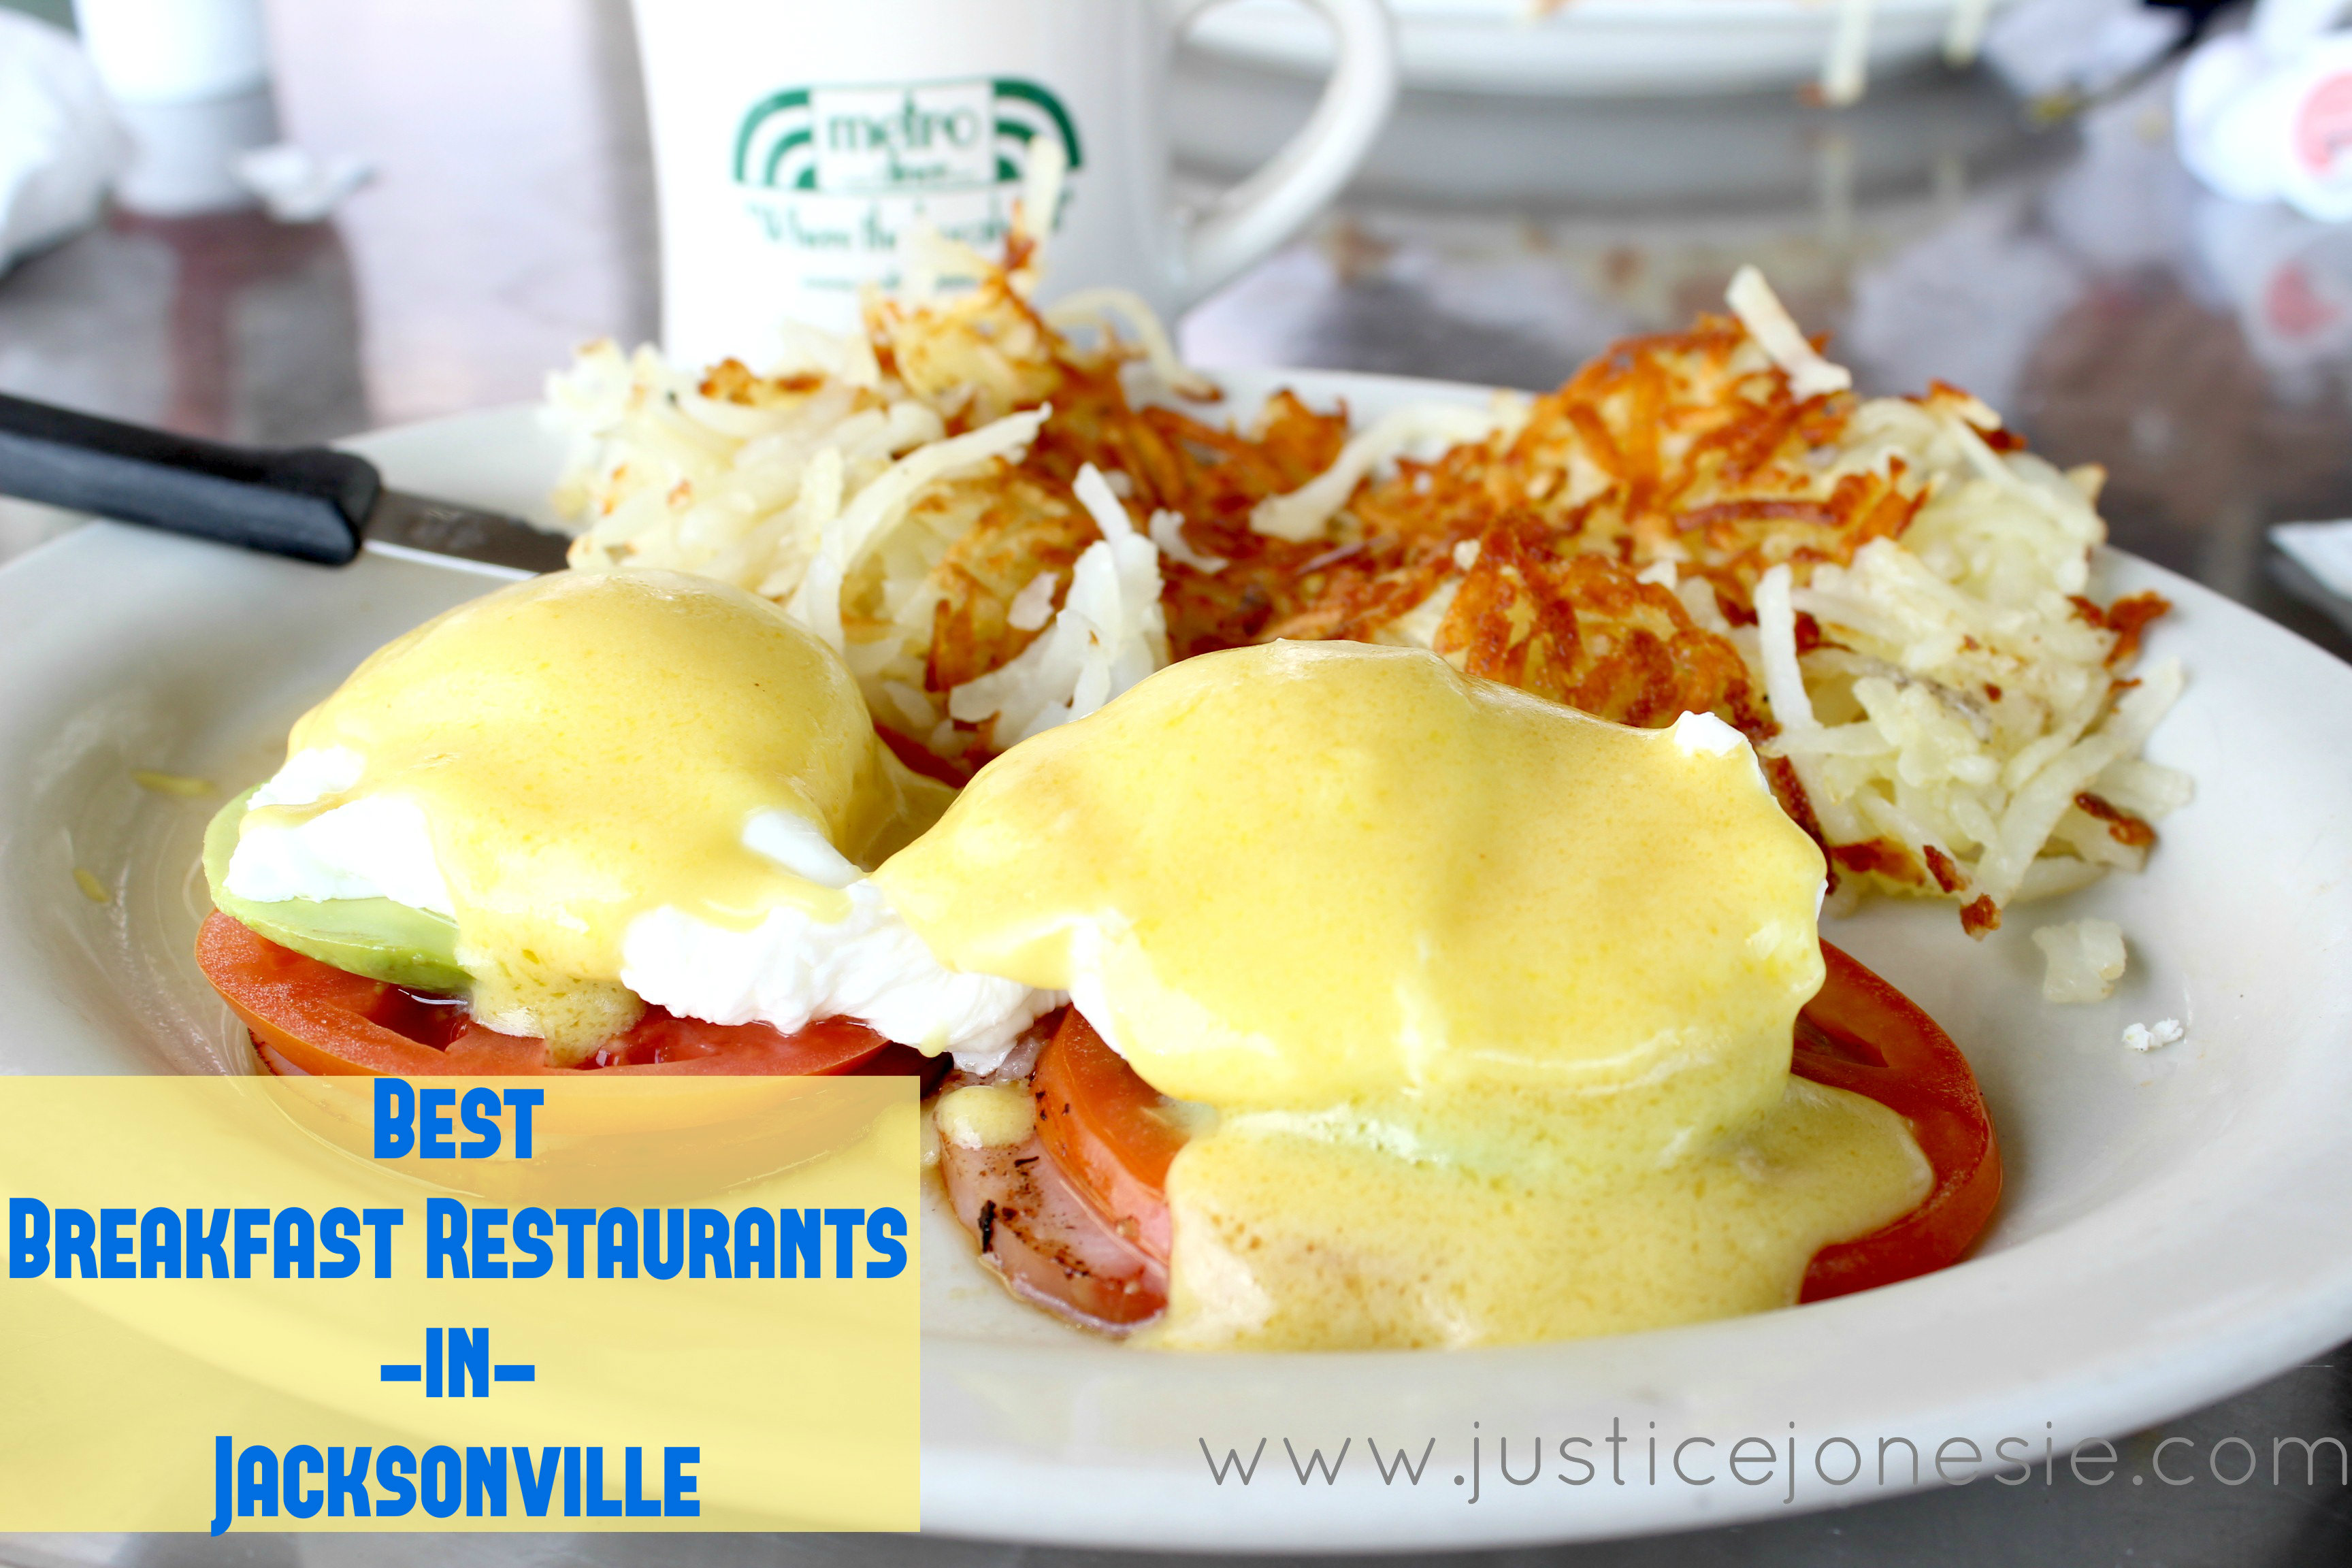 Best Locally Owned Breakfast Restaurants, Jacksonville